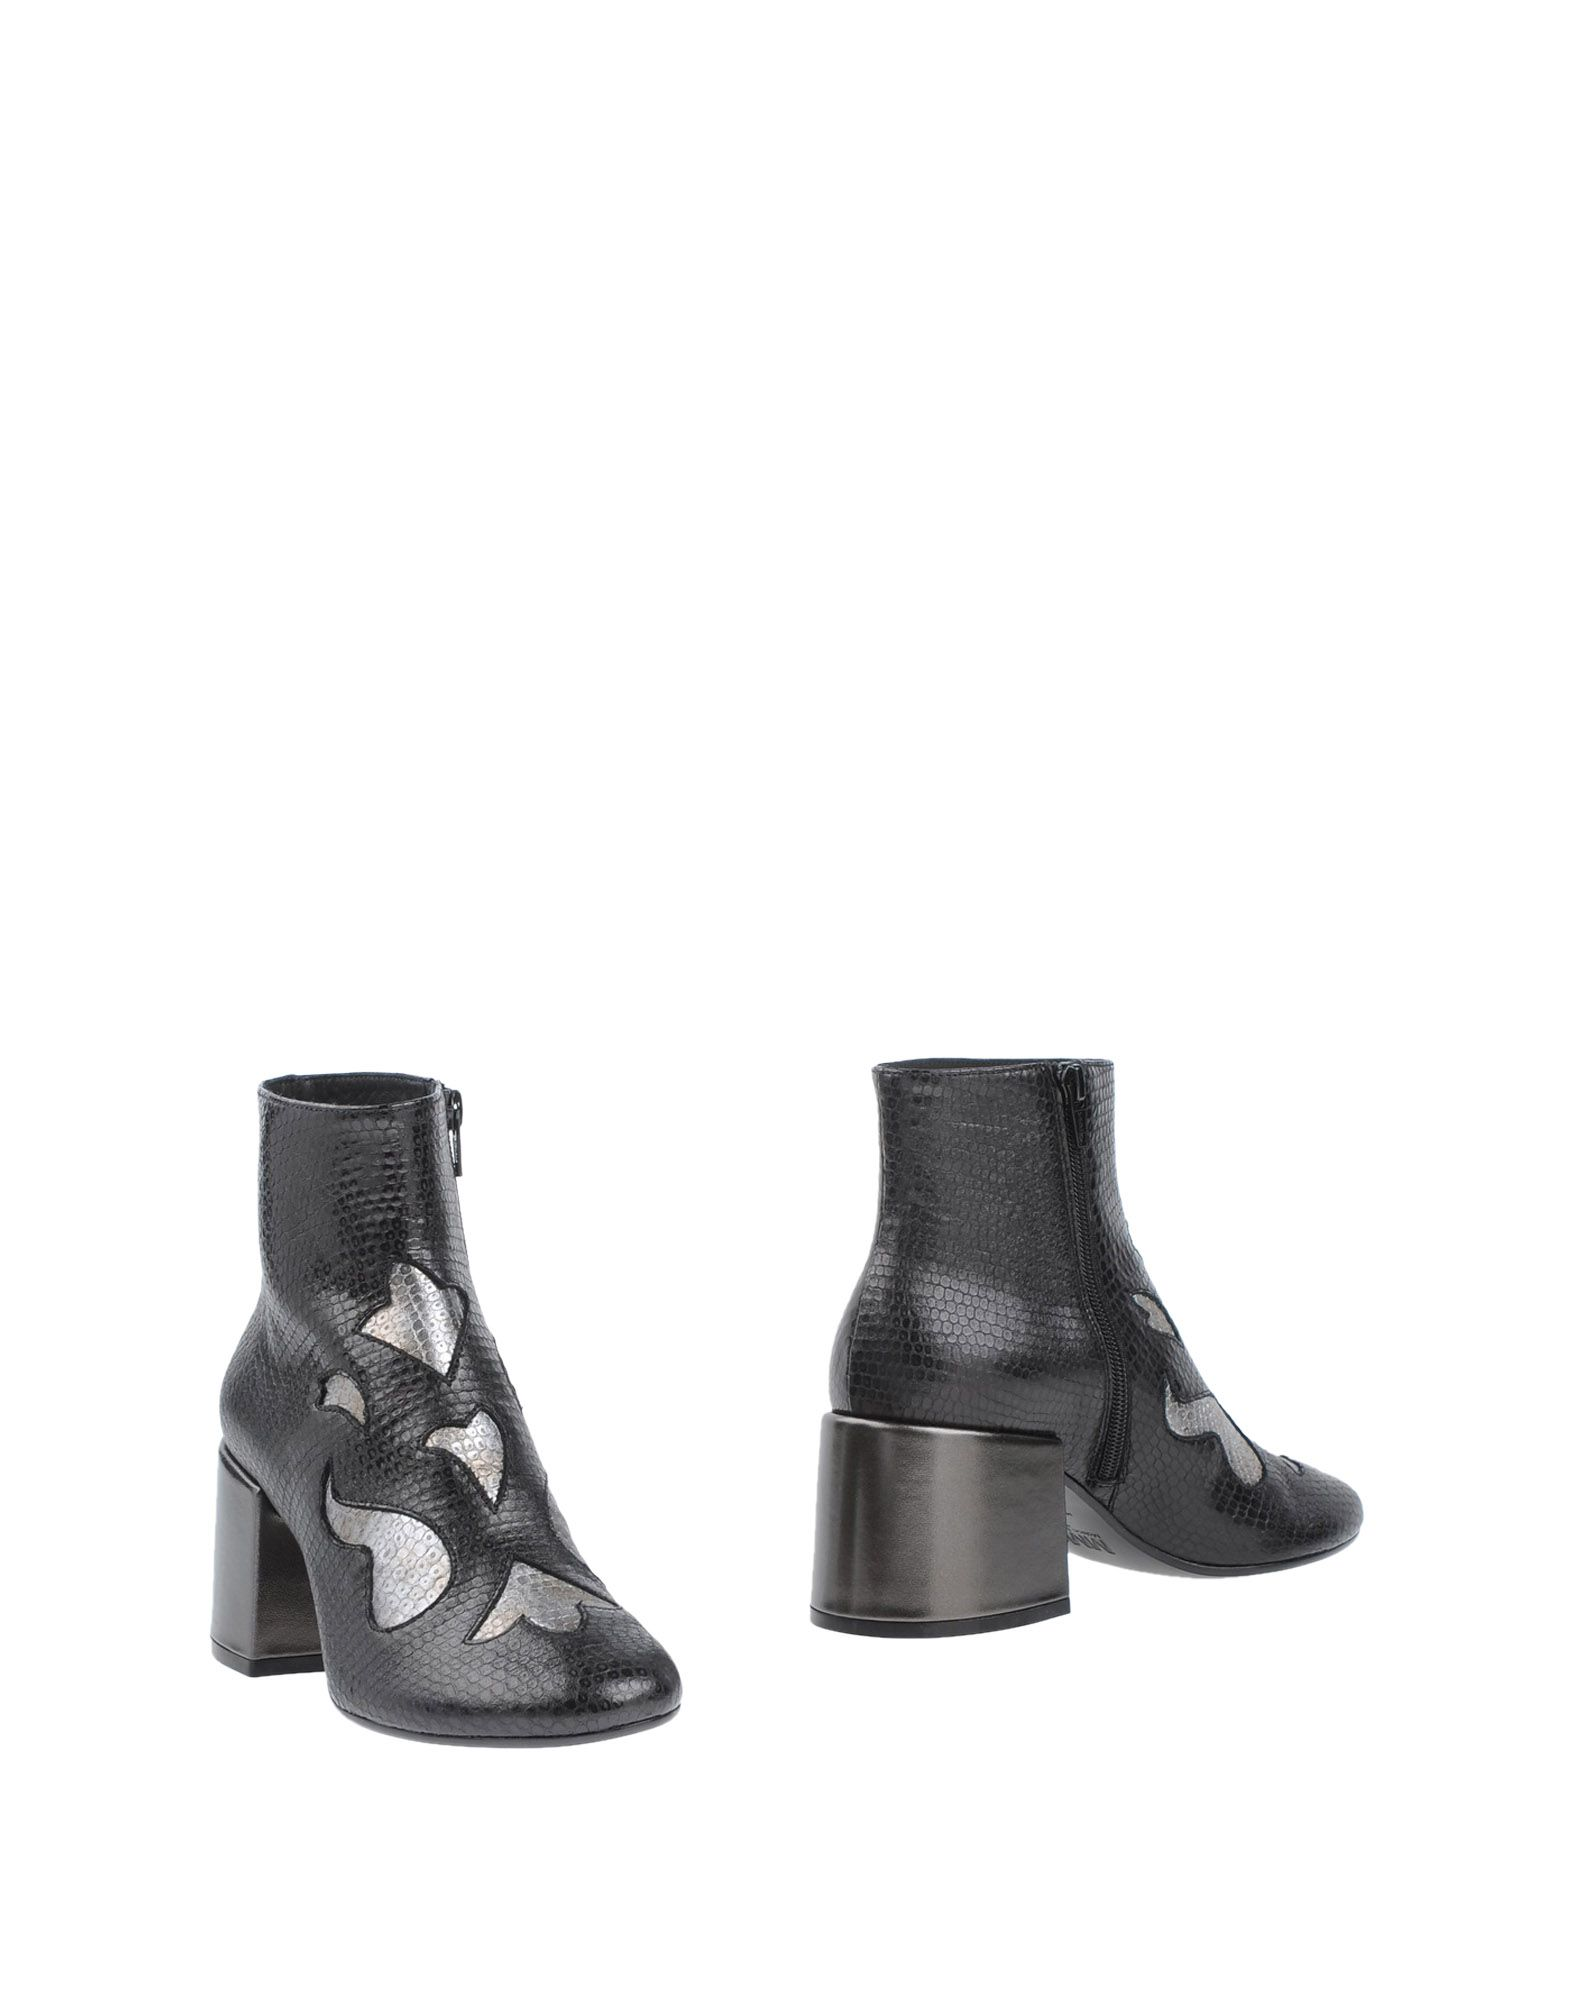 Bottine Mm6 Maison Margiela Femme - Bottines Mm6 Maison Margiela Noir Chaussures casual sauvages